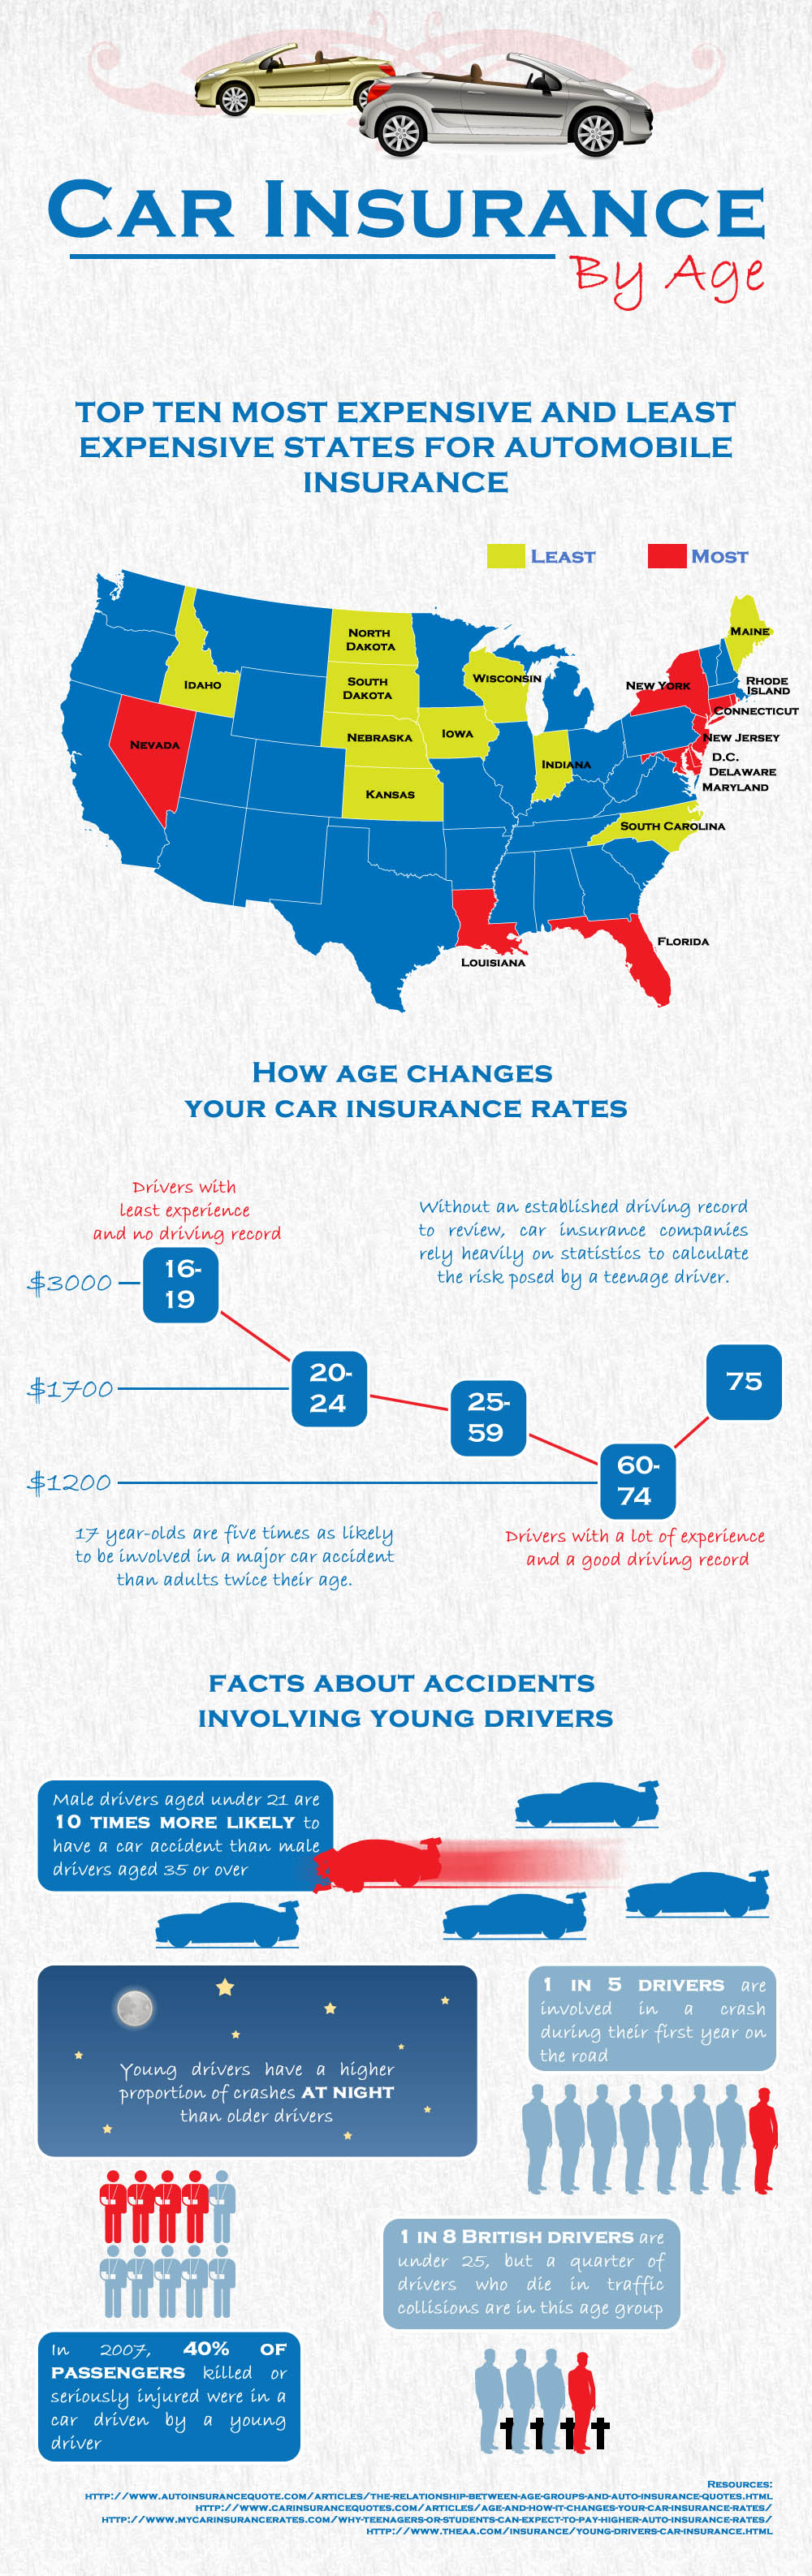 Car Insurance By Age